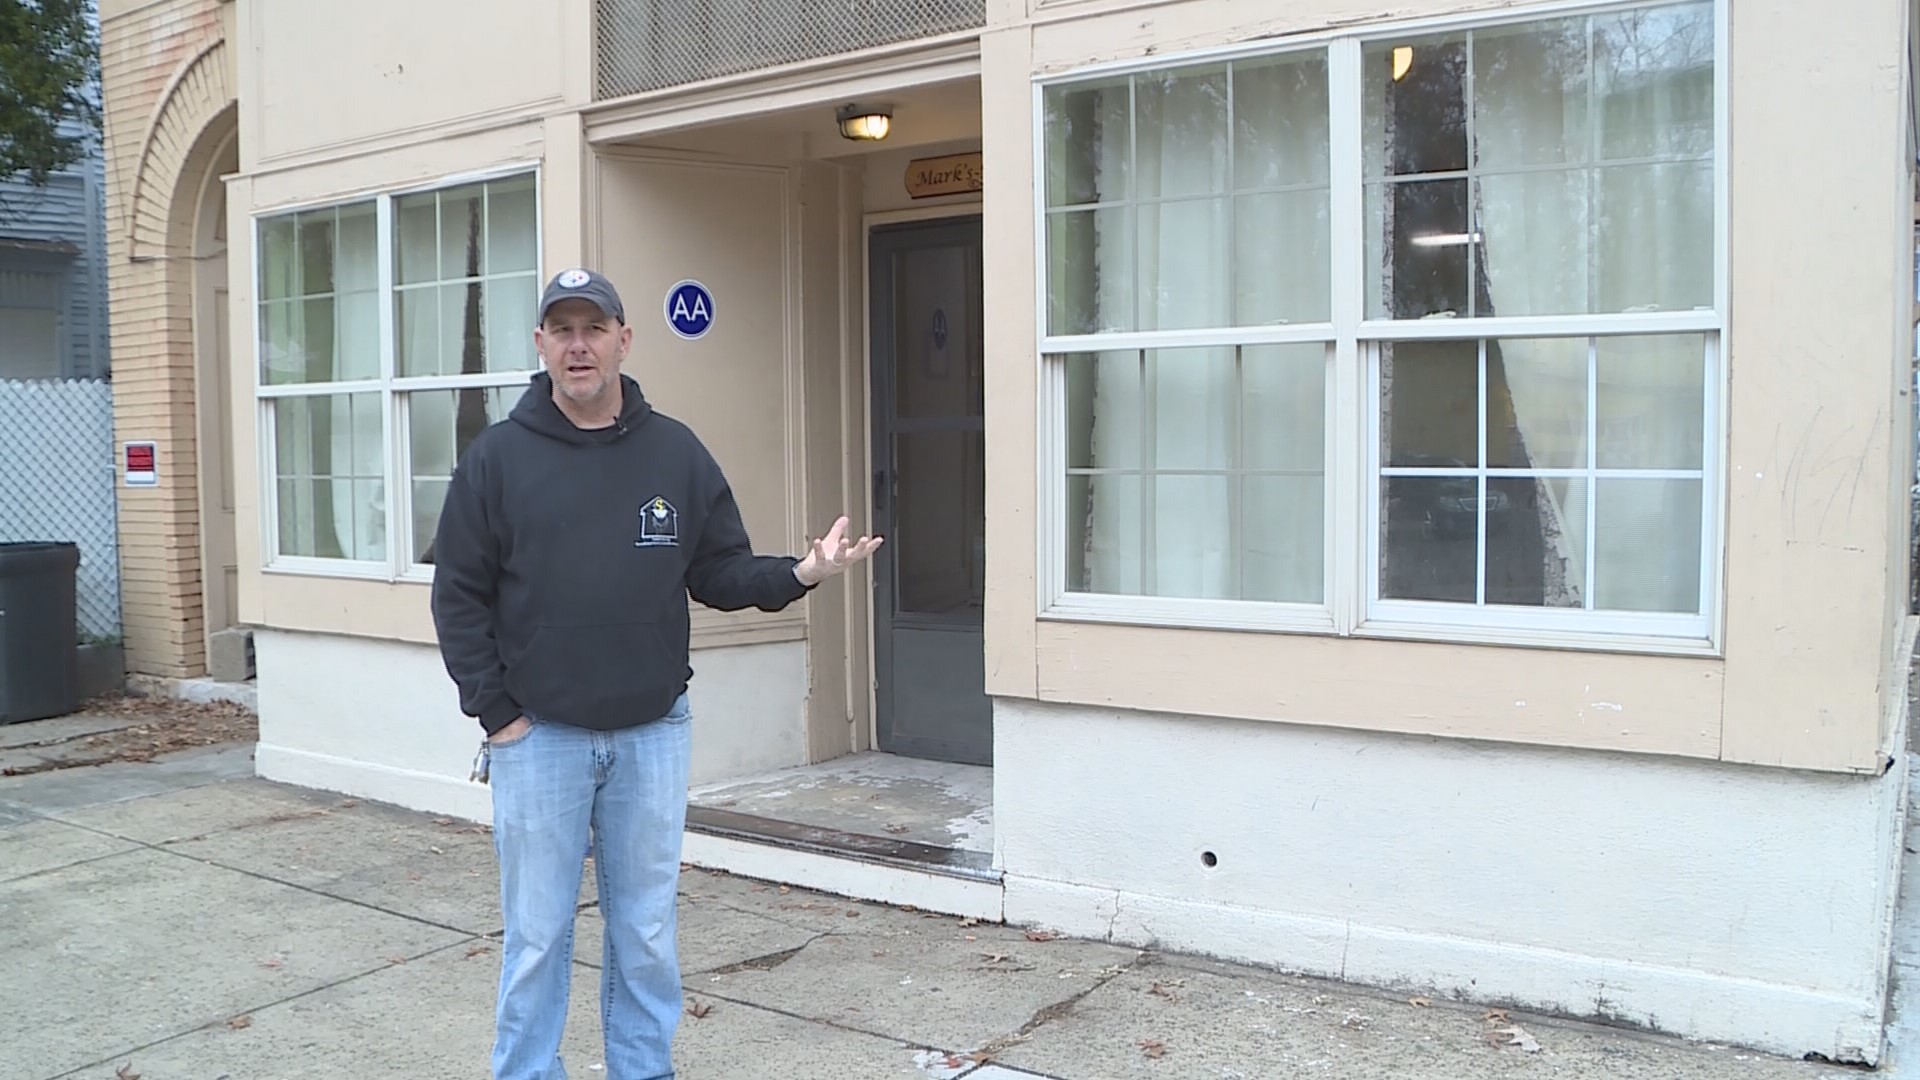 Former Homeless Man Sets Up His Own Homeless Shelter For Those With Nowhere Else To Go